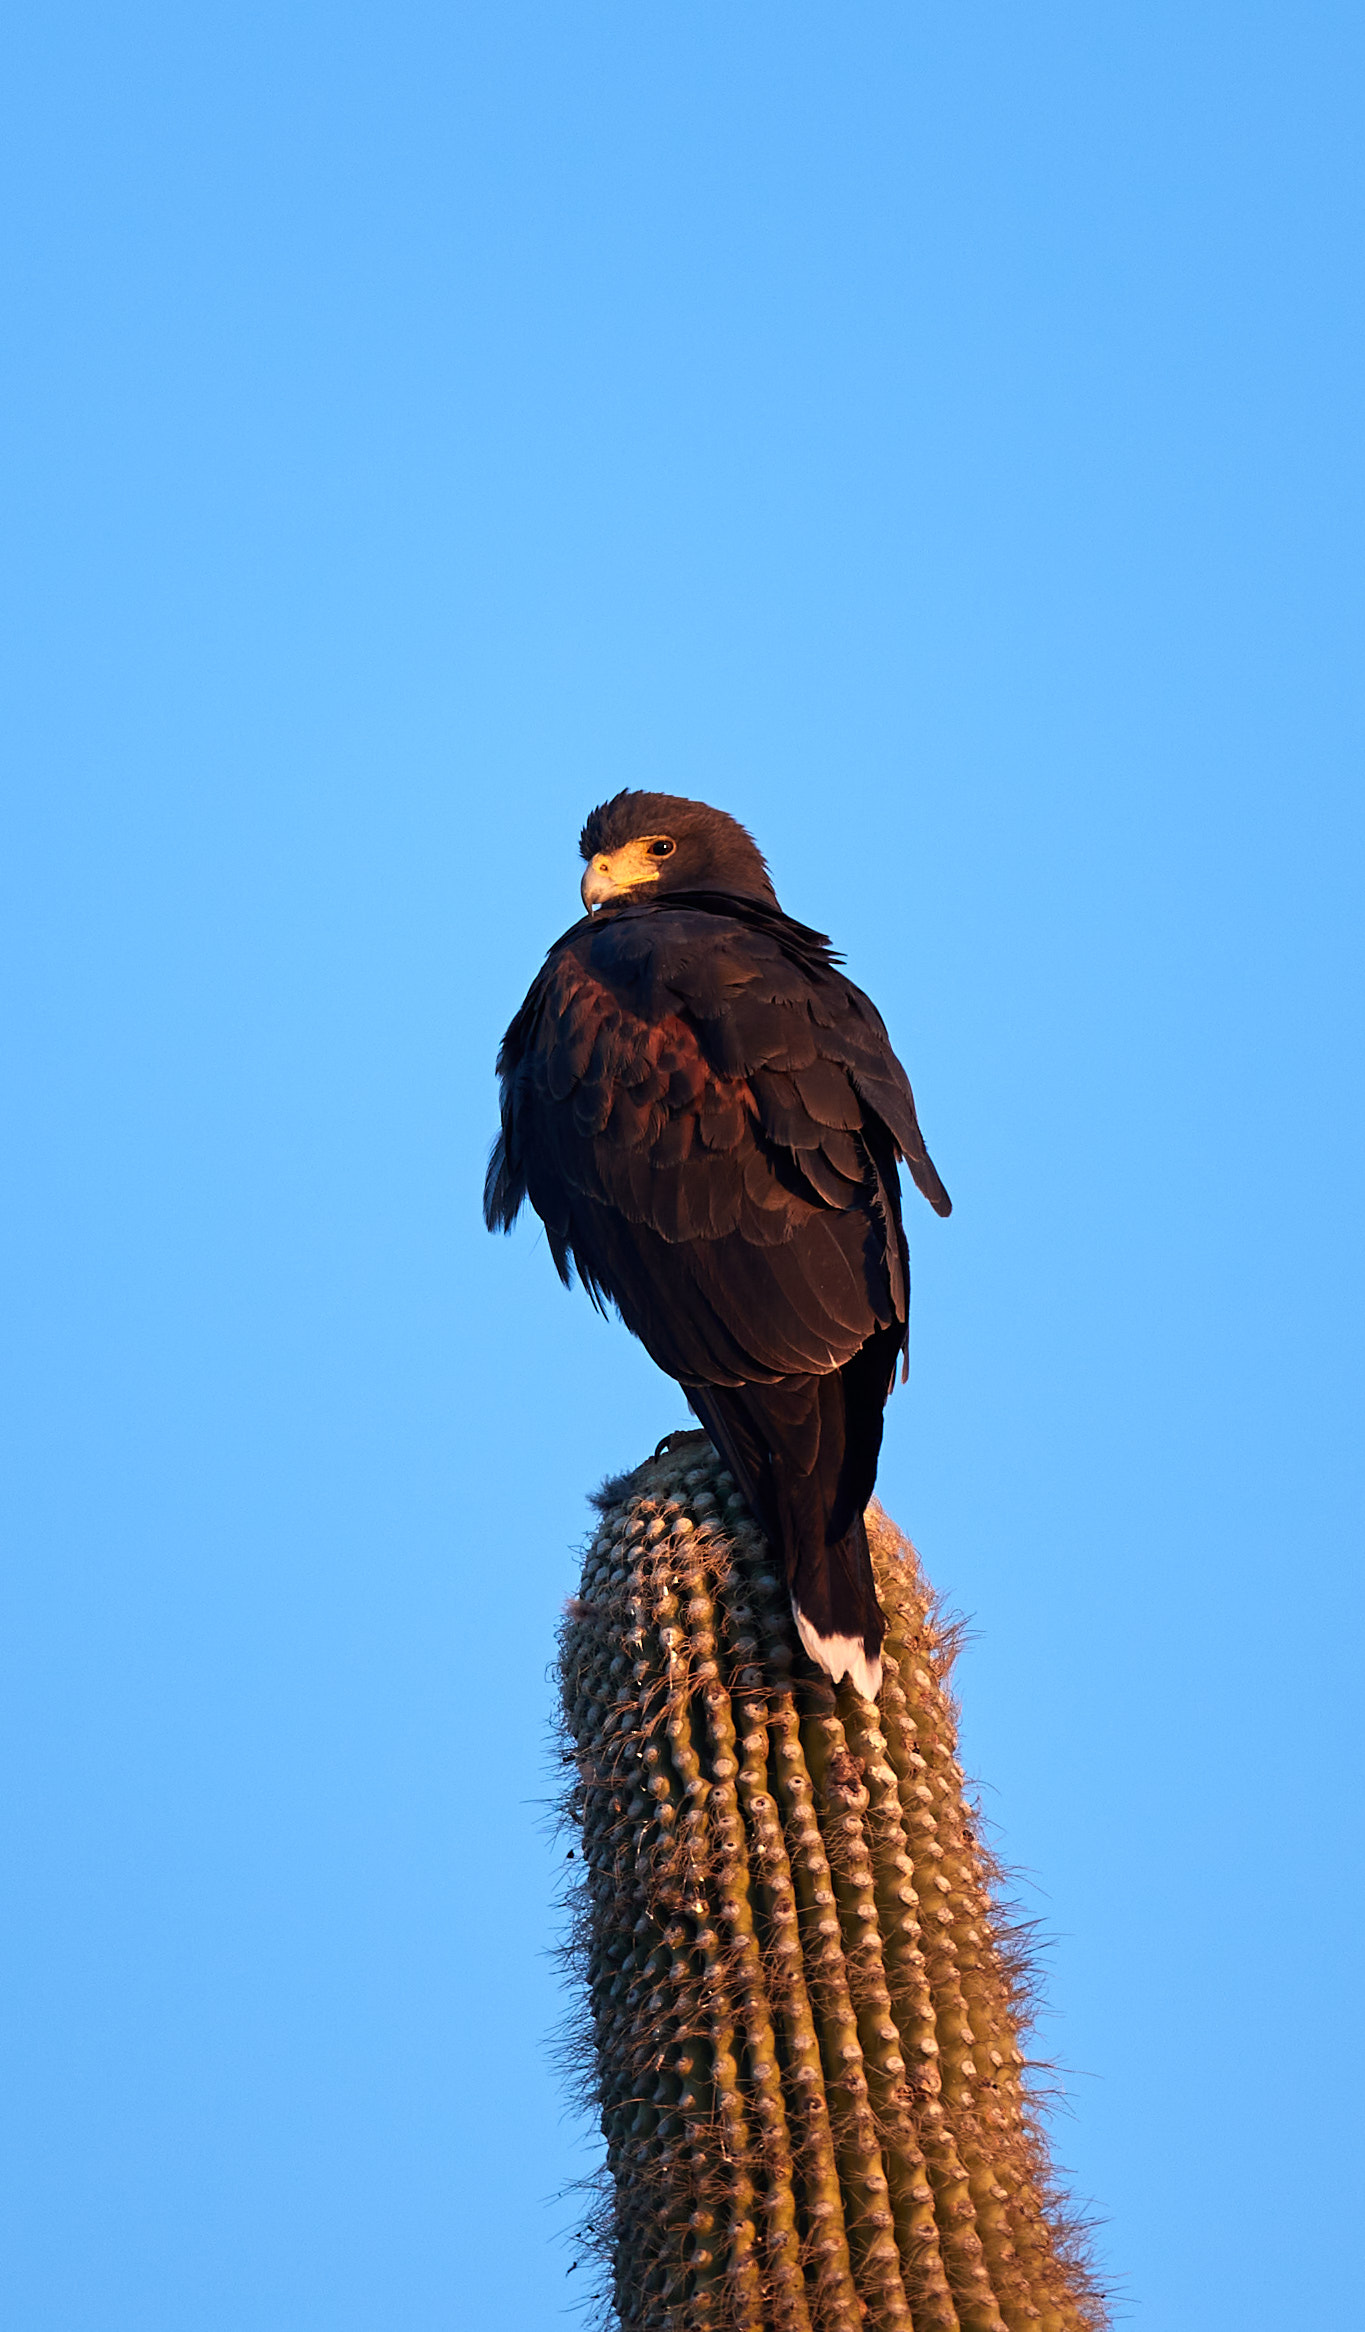 152563 download wallpaper Animals, Eagle, Bird, Brown, Cactus, Wildlife screensavers and pictures for free